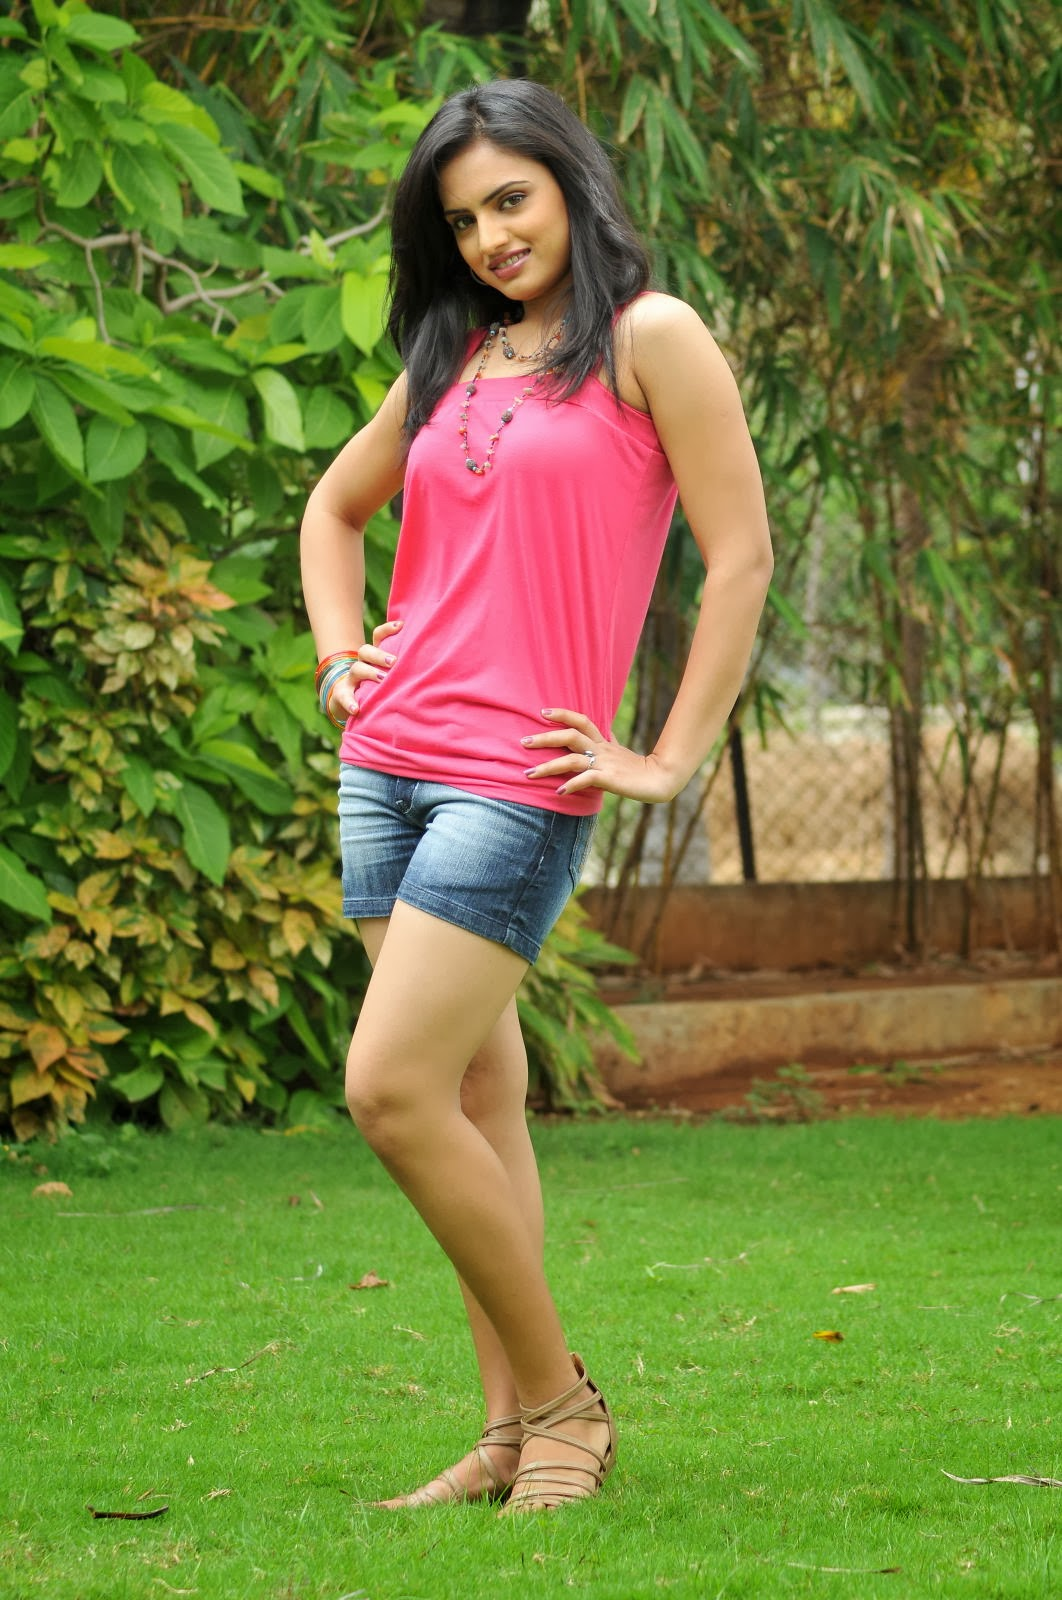 CelebsNext ~ Bollywood and South Indian Cinema Actress Exclusive Picture Galleries Ritu Kaur ...